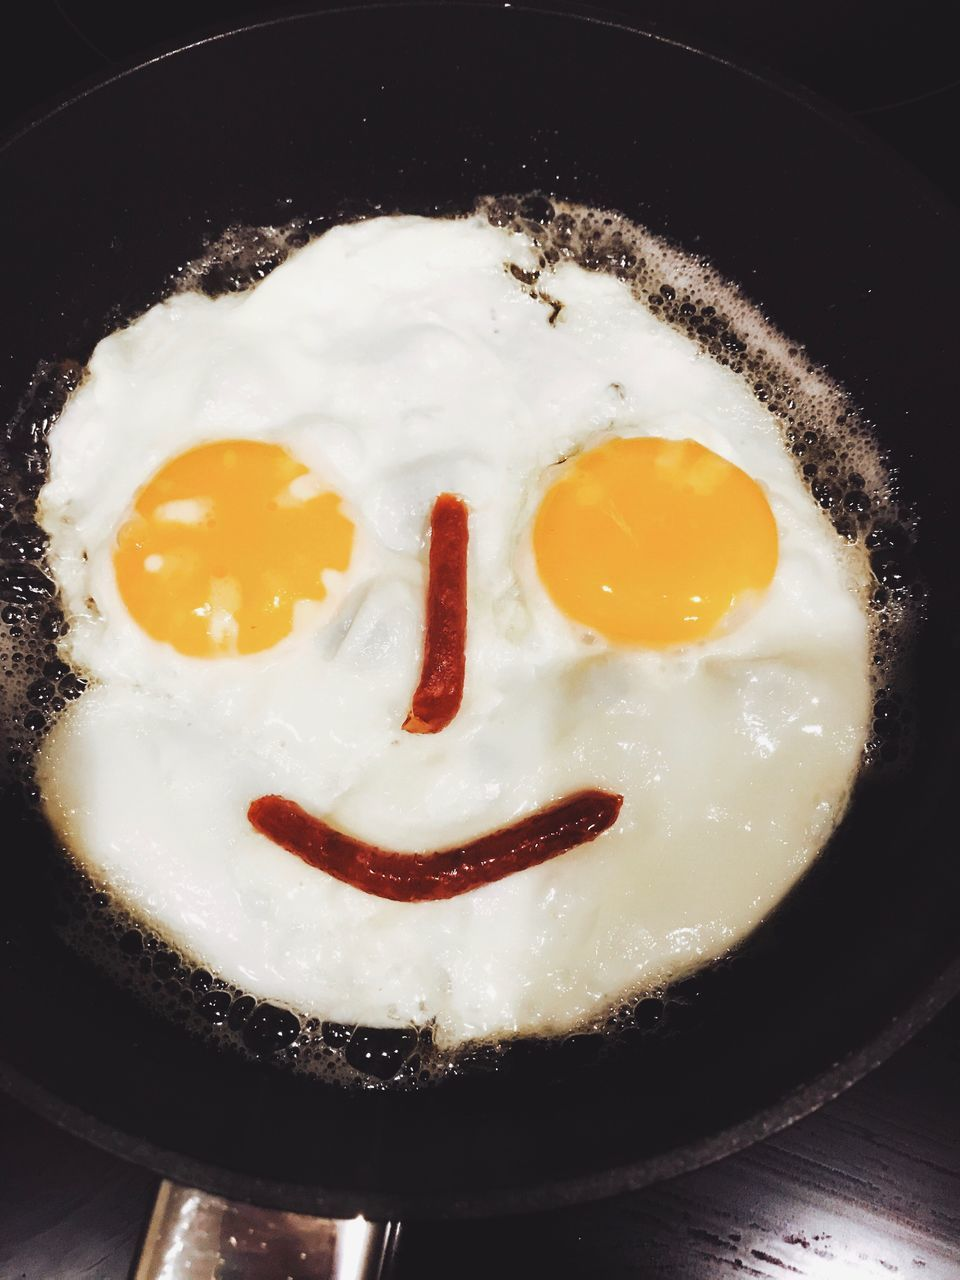 fried egg, food and drink, egg, fried, frying pan, food, indoors, no people, close-up, sunny side up, breakfast, egg yolk, freshness, skillet- cooking pan, ready-to-eat, day